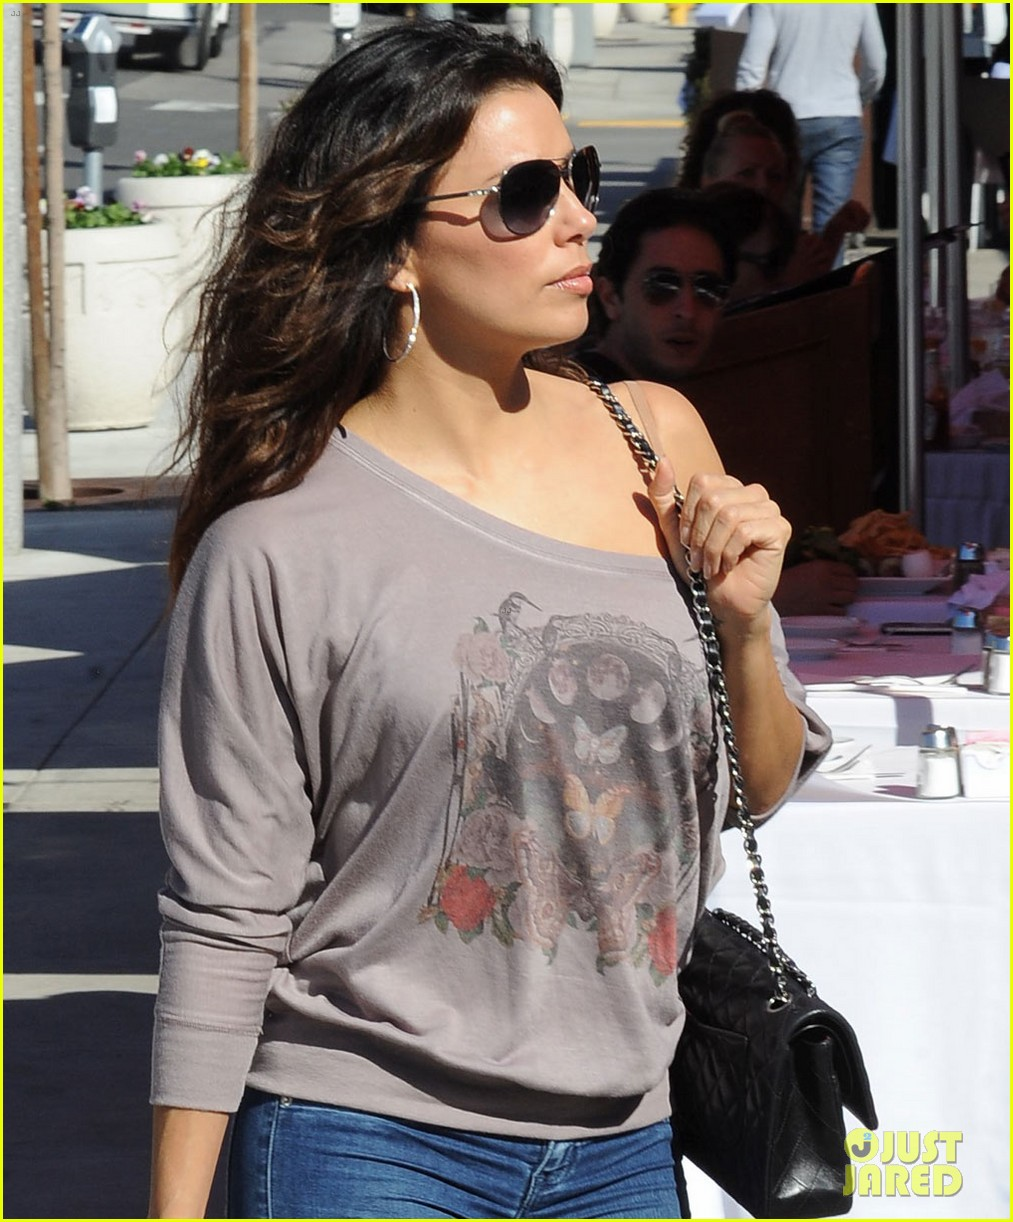 eva longoria smiling sunset shopper 02